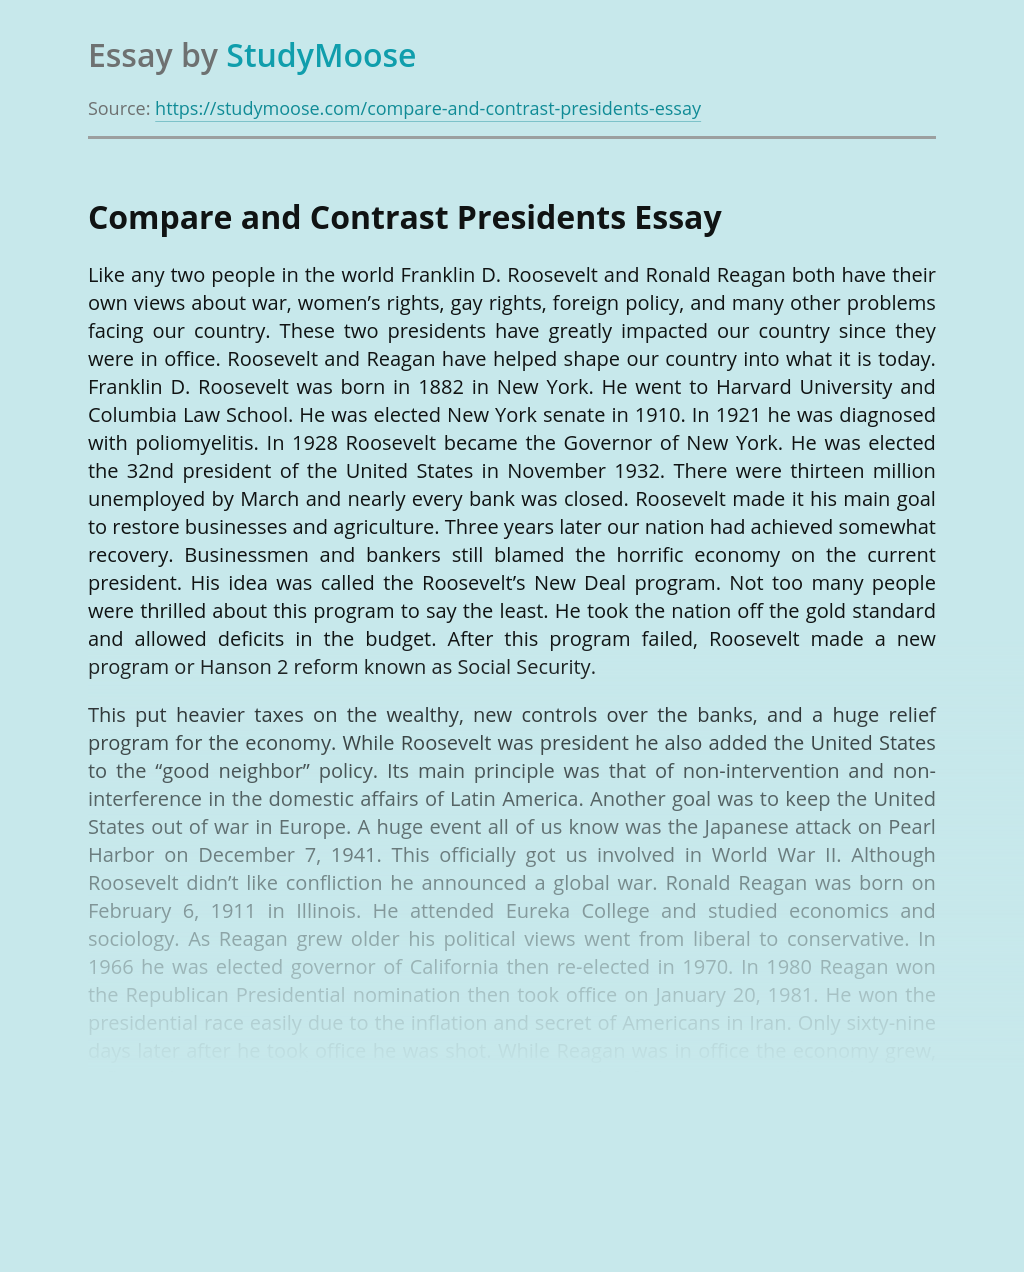 Compare and Contrast Presidents